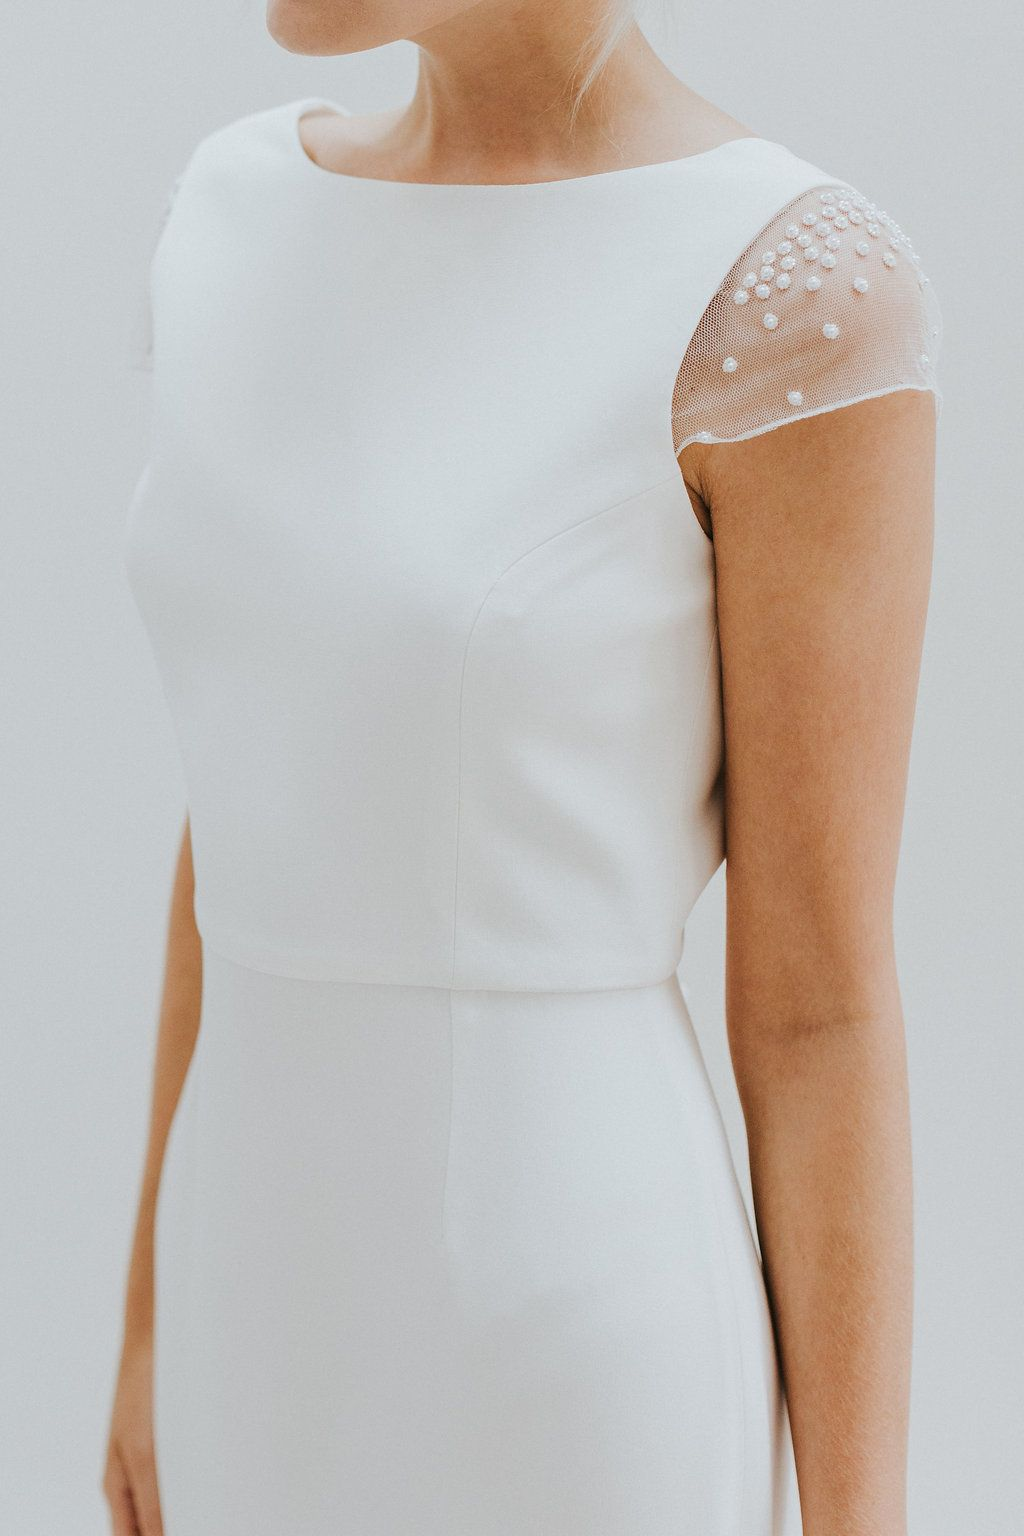 Simple modern wedding dress with hand embroidered cap sleeves and